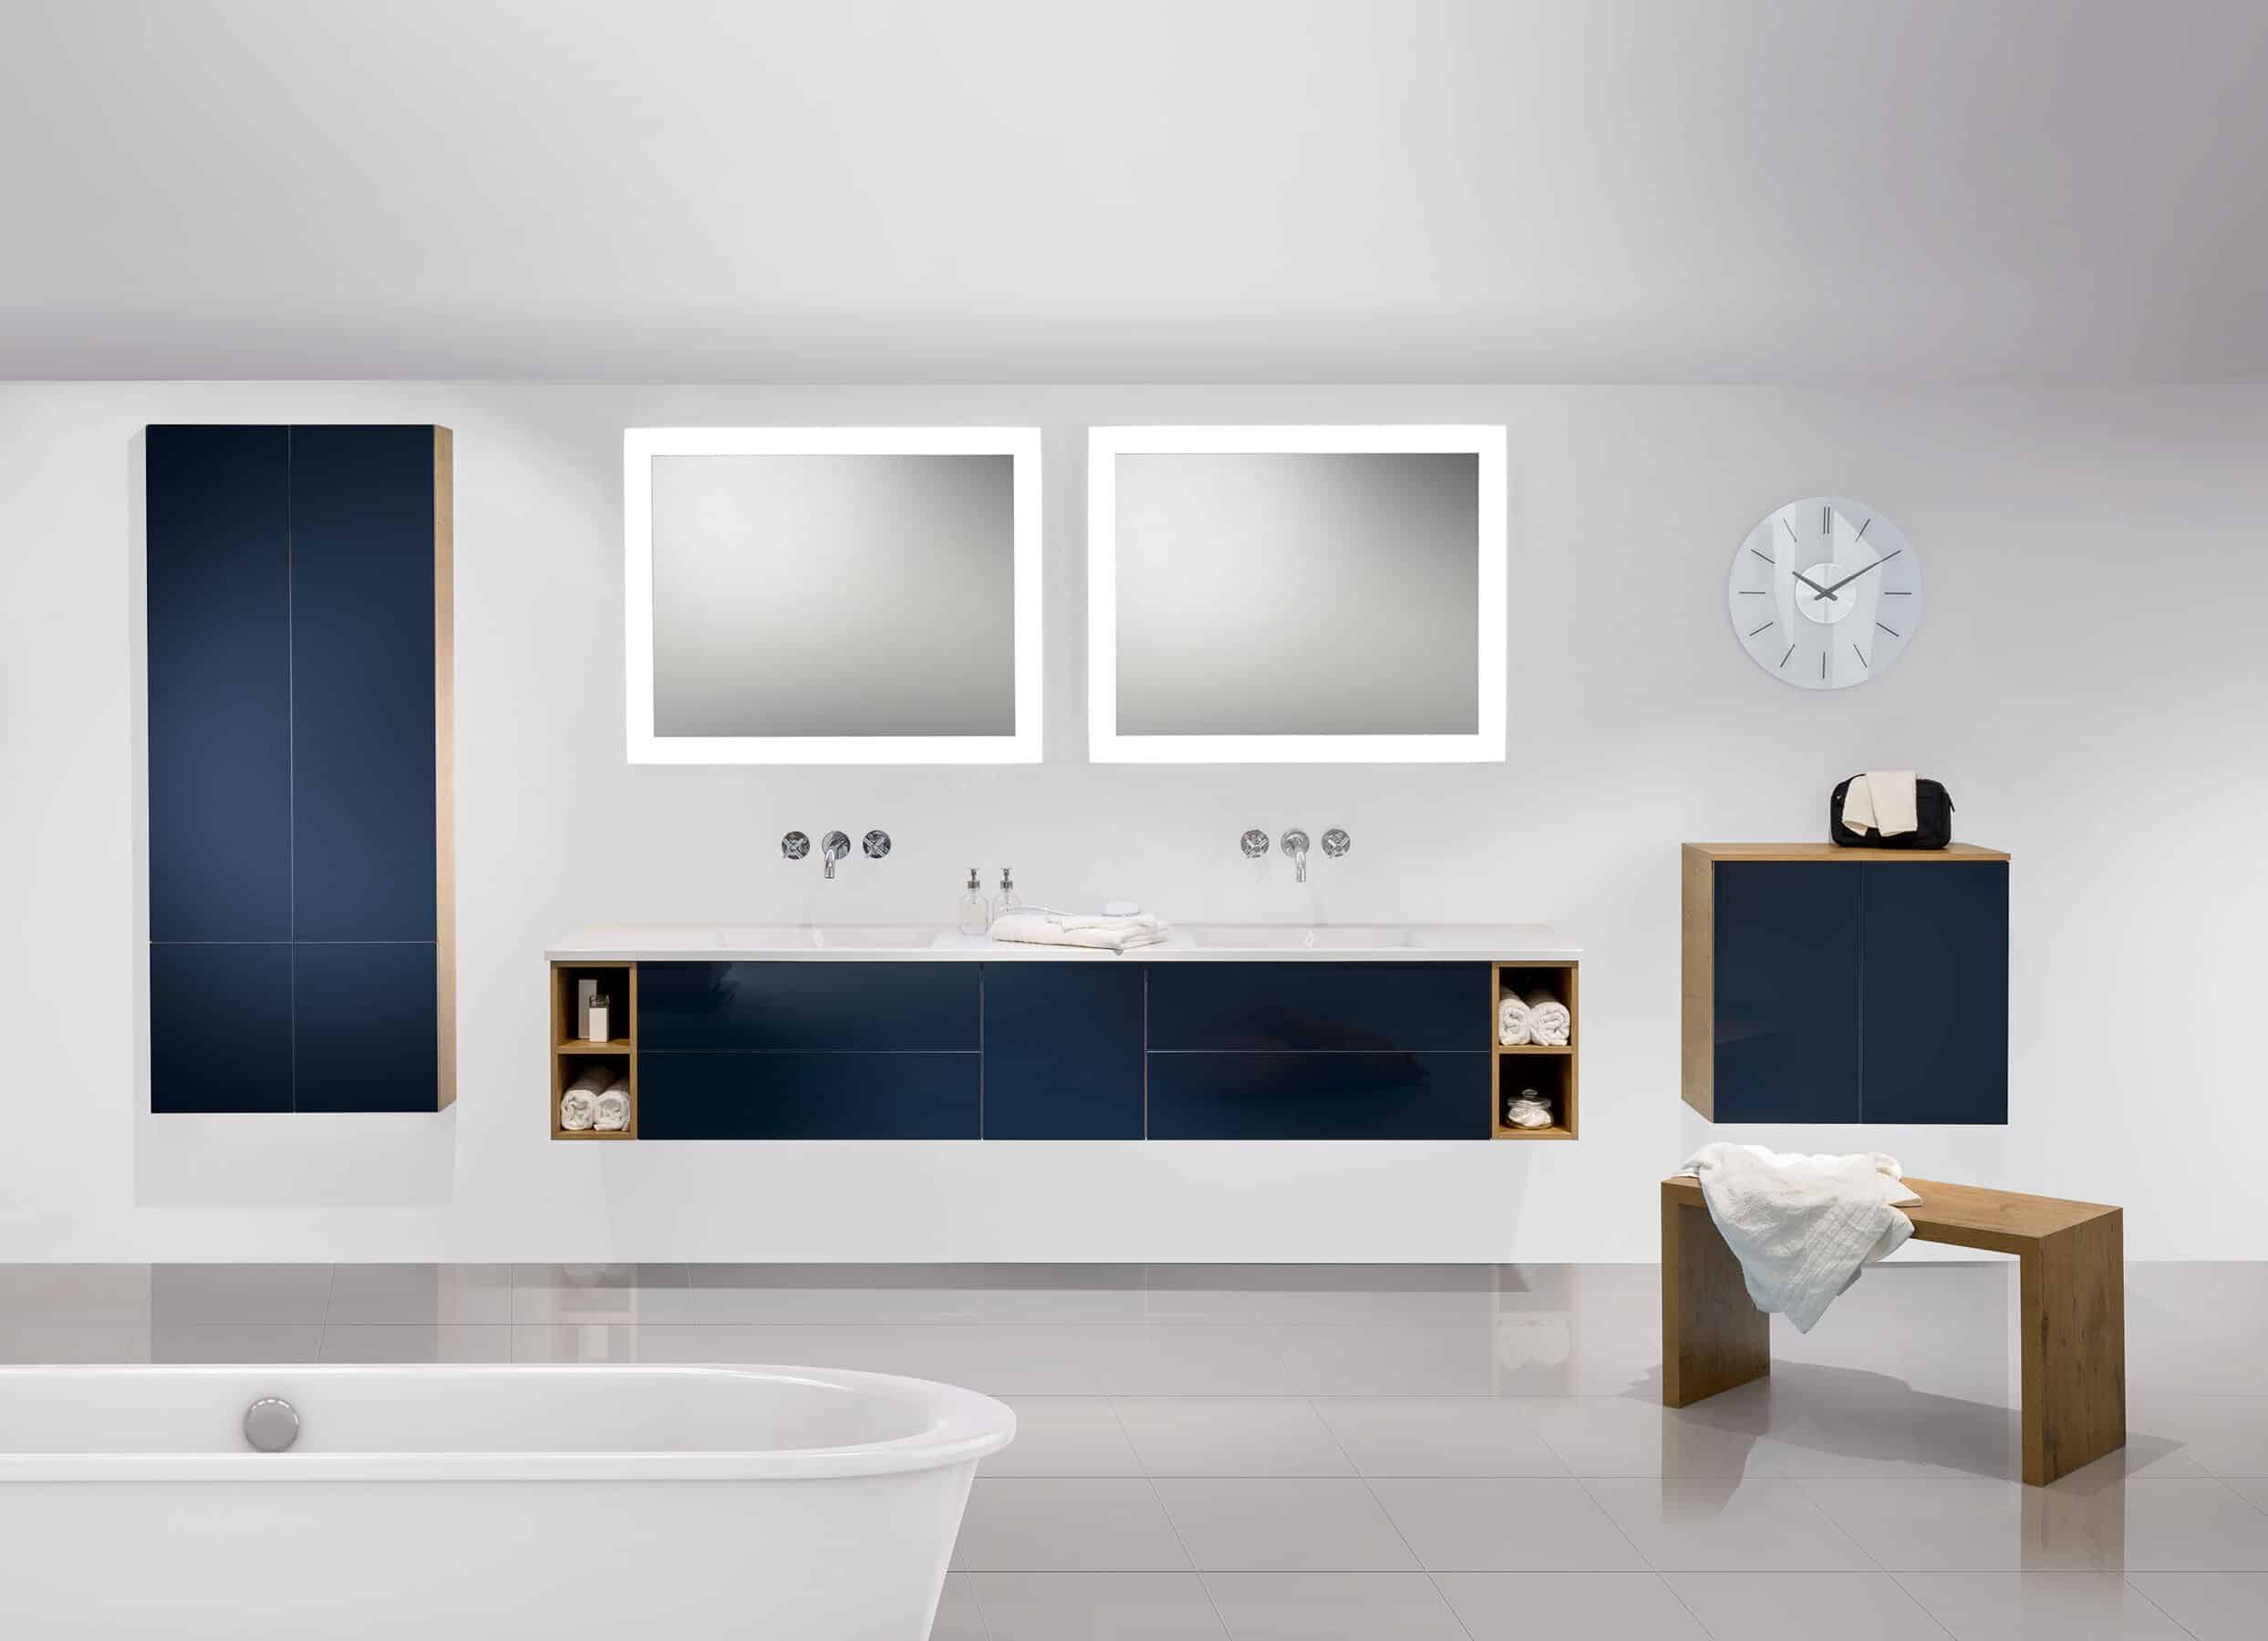 Badea bathroom vanity includes modern design features like these innovative basins and storage.